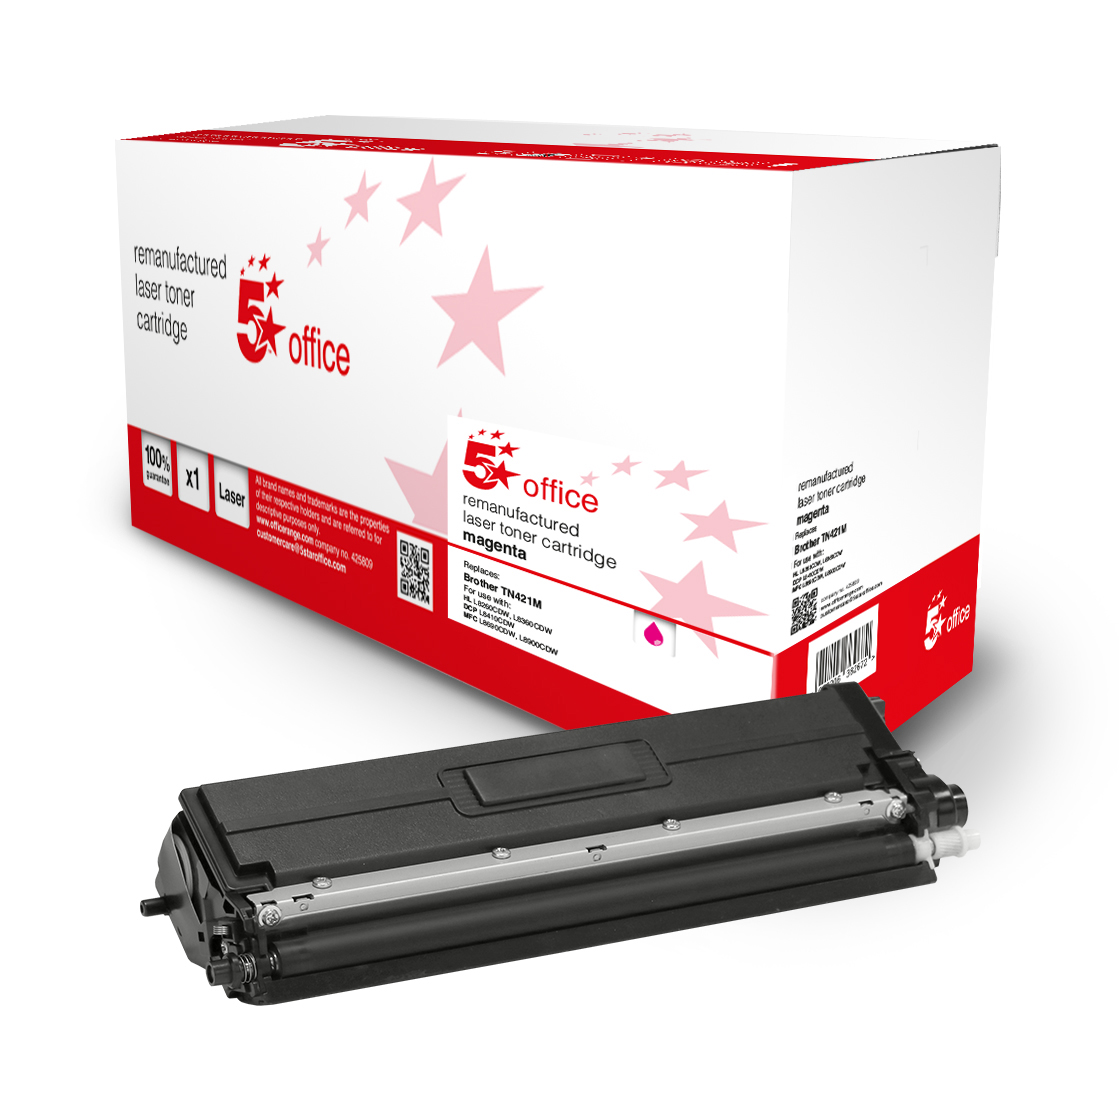 5 Star Office Remanufactured Toner Cartridge Page Life Magenta 1800pp [Brother TN421M Alternative]